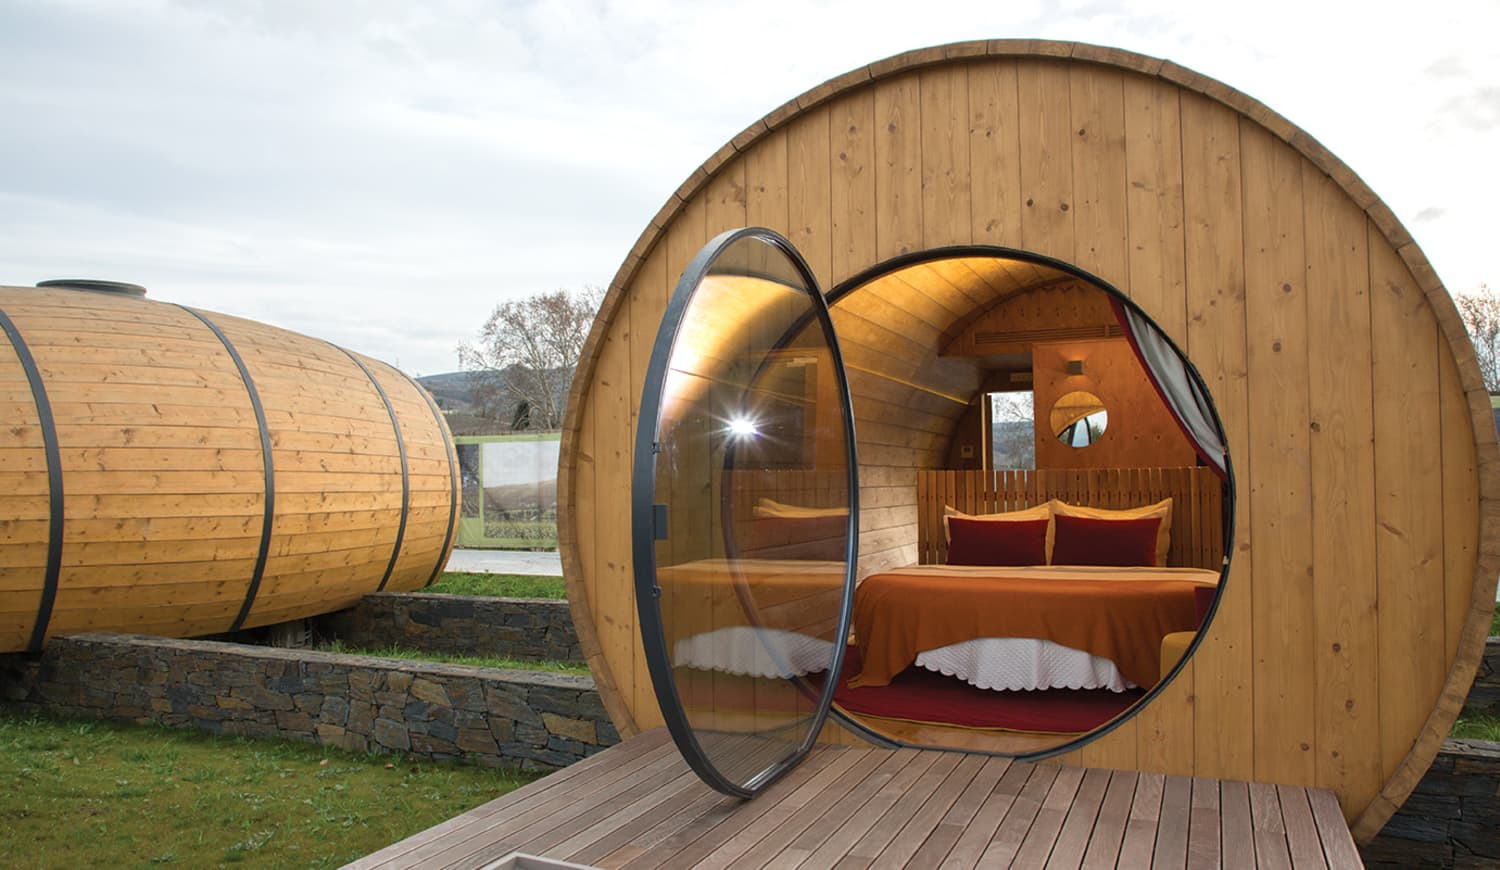 Calling All Wine Lovers: Be One with Your Vino and Stay at This Wine Barrel Hotel